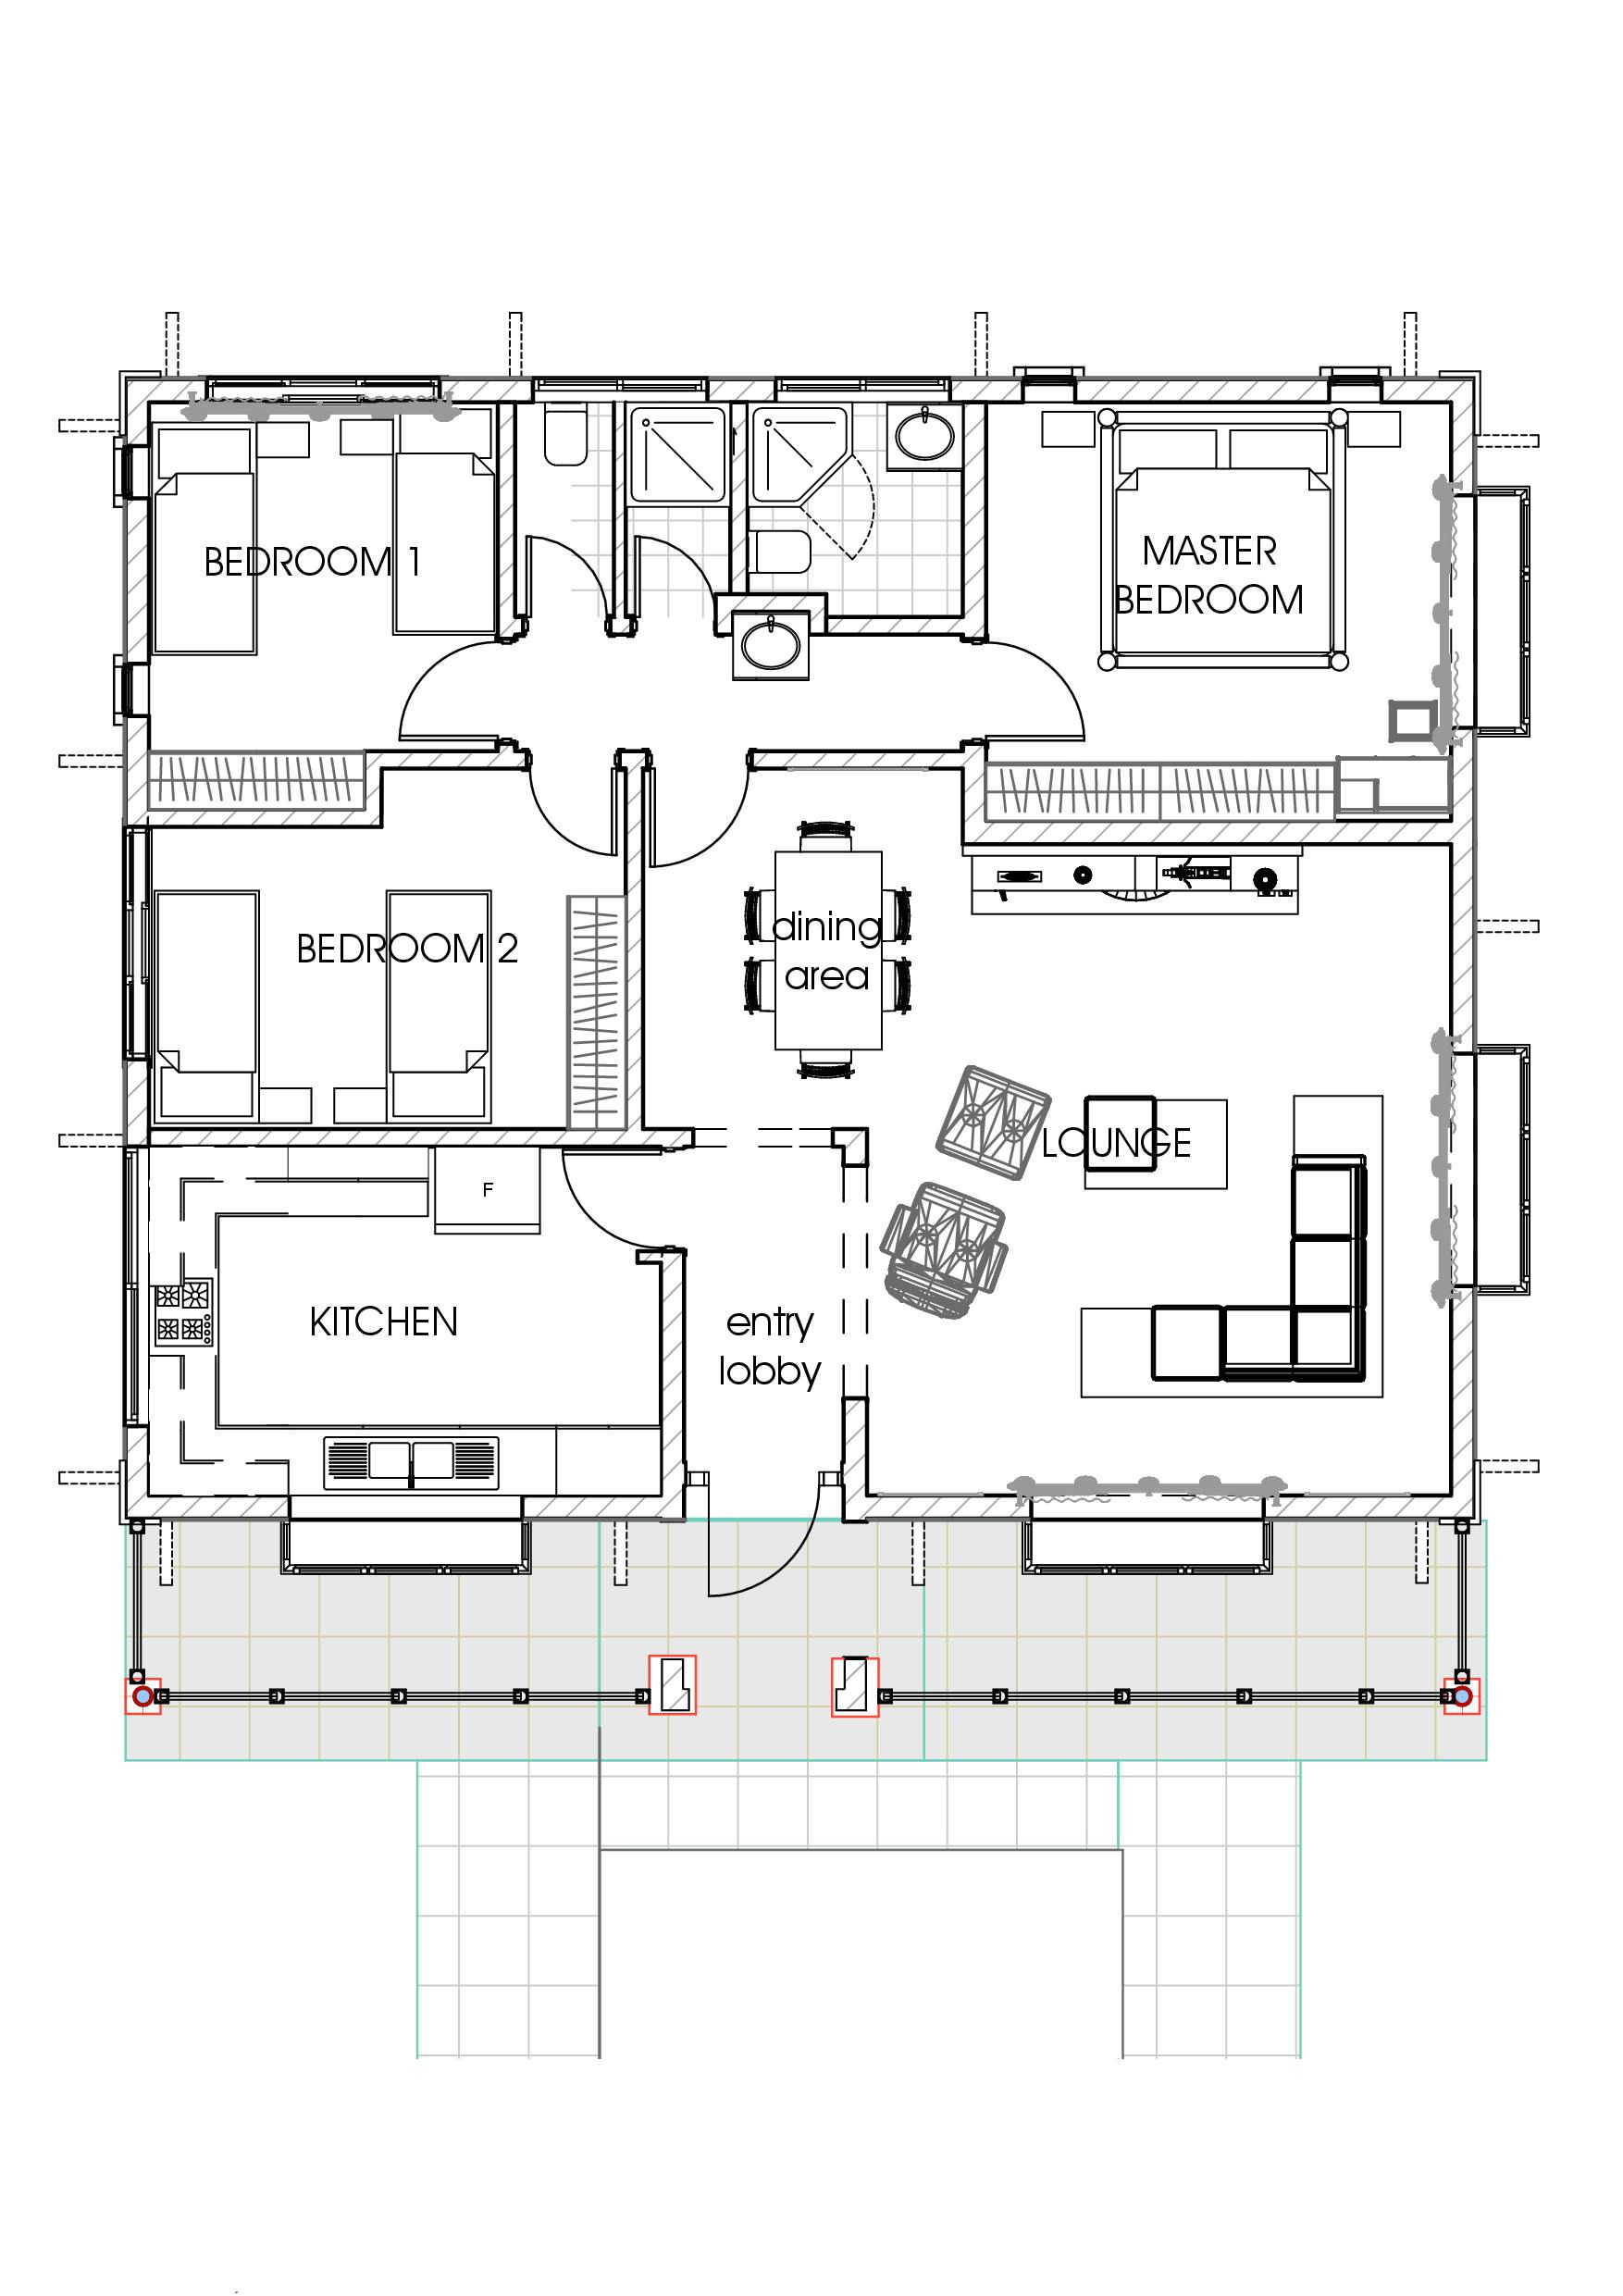 Simple 3 Bedroom House Floor Plans Beautiful David Chola – Architect – House Plans In Kenya – the Concise